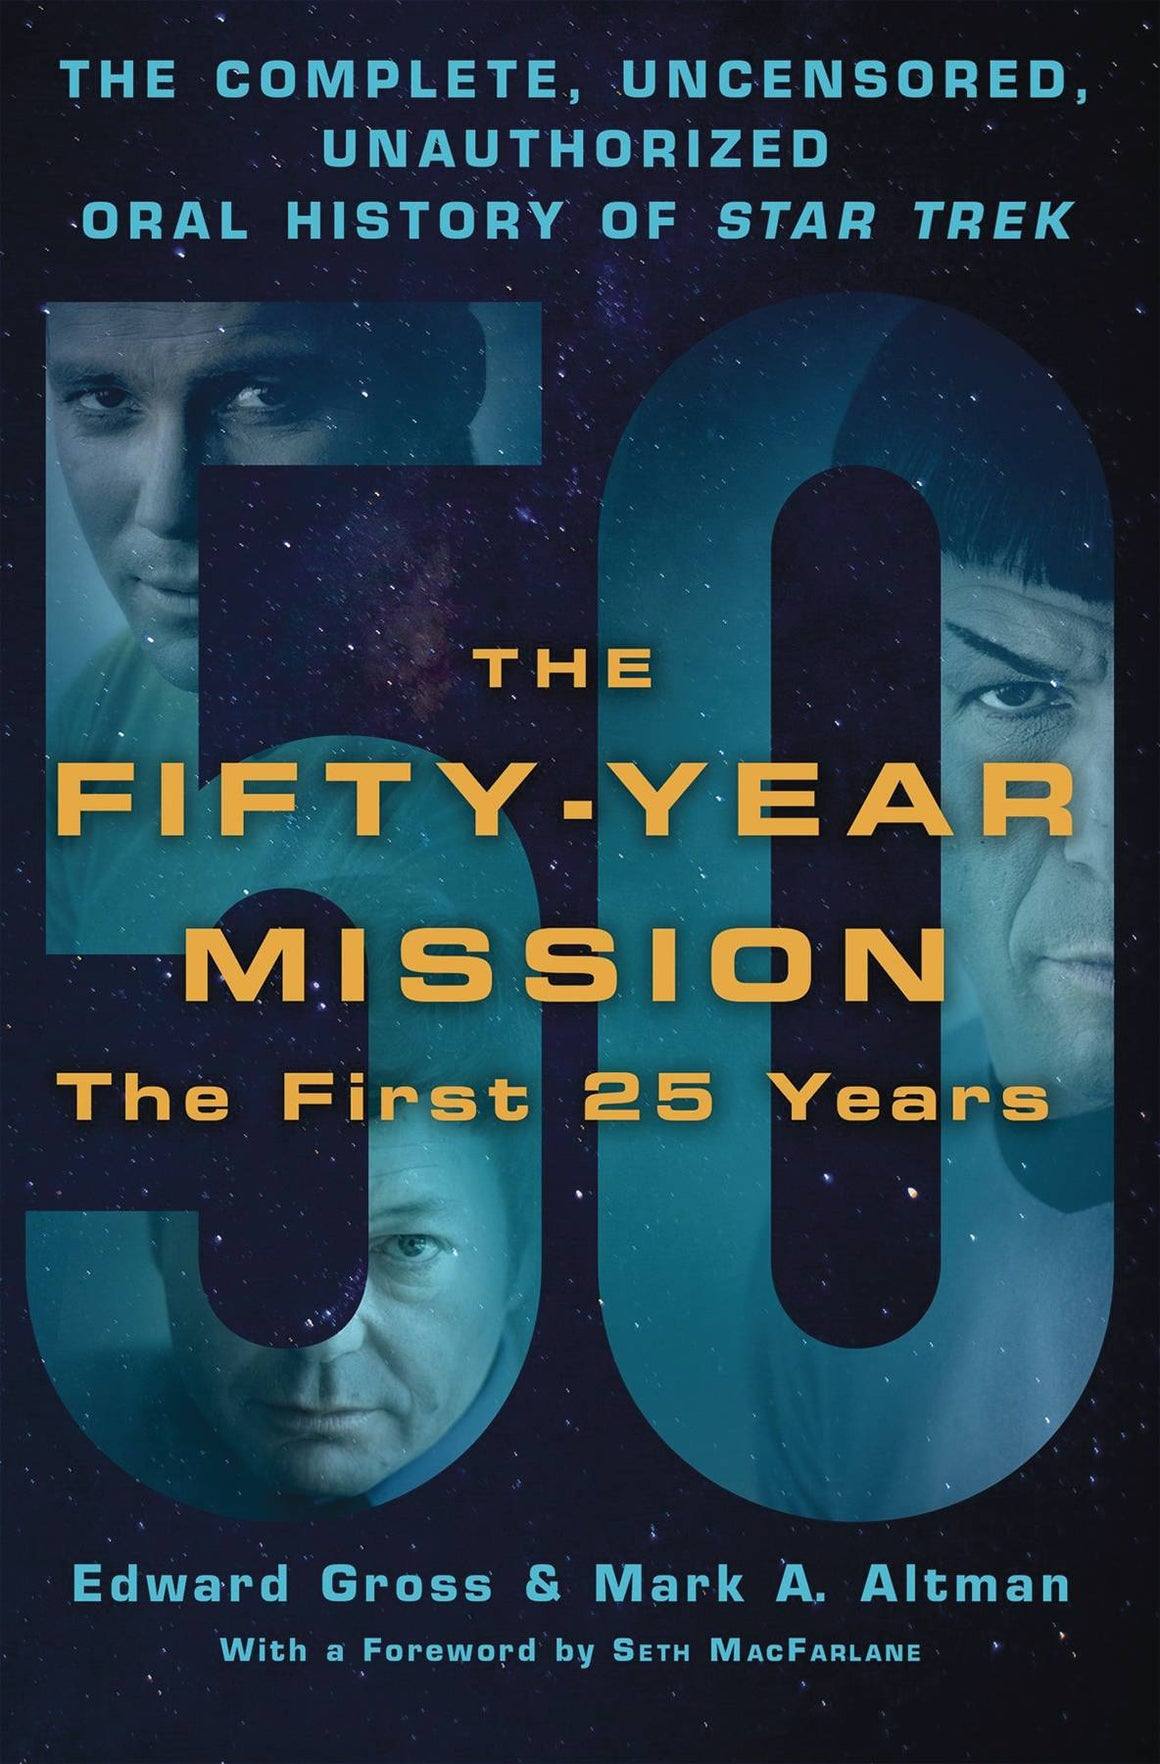 50 Year Mission Oral History Star Trek 1st 25 years